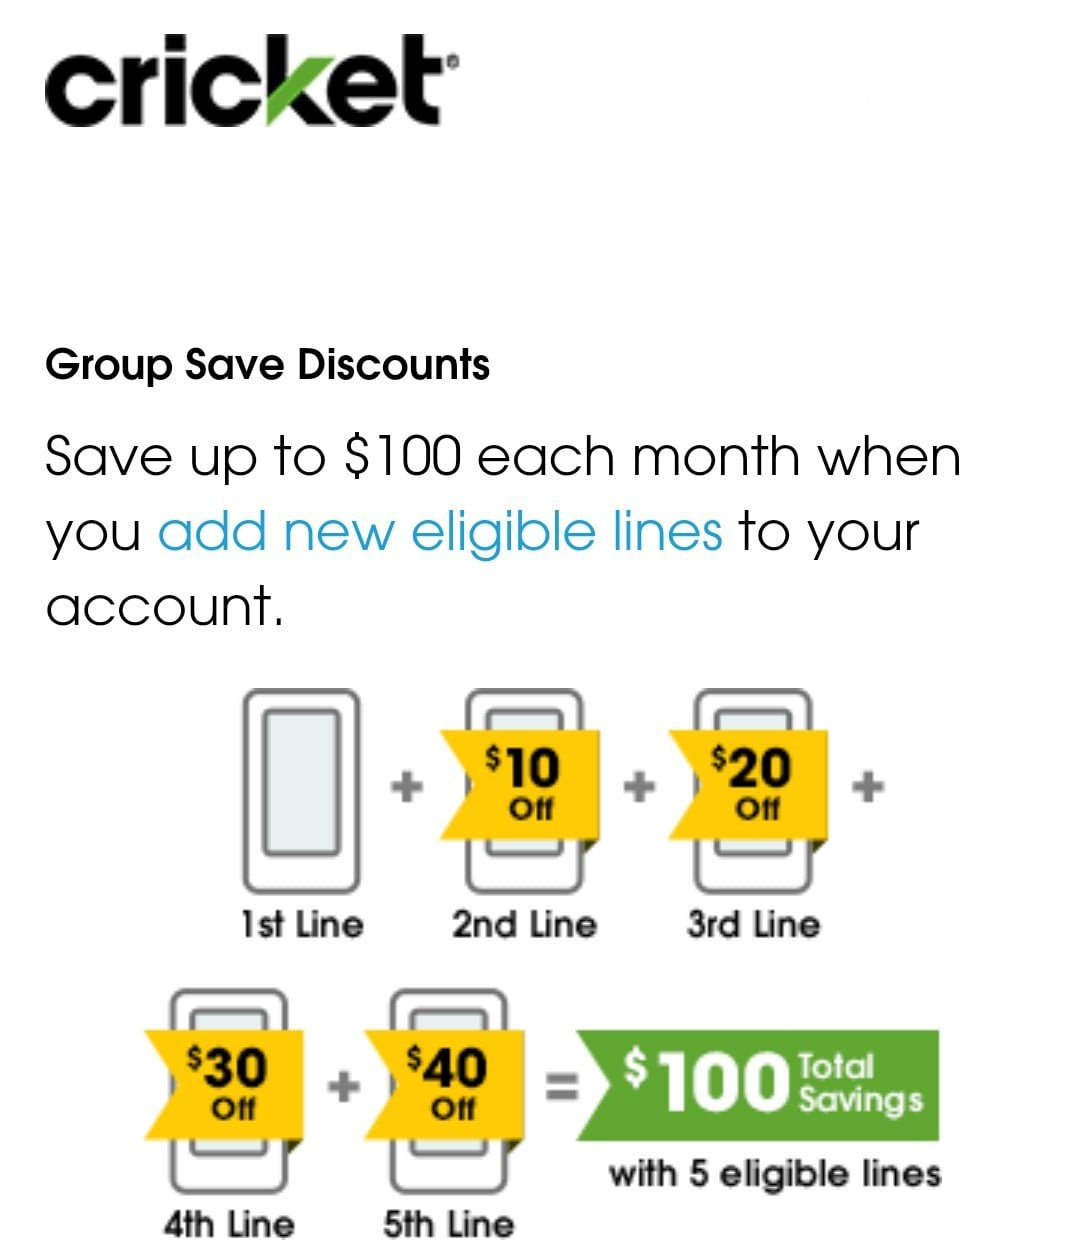 Cricket Wireless Group Save Discounts Set to Change